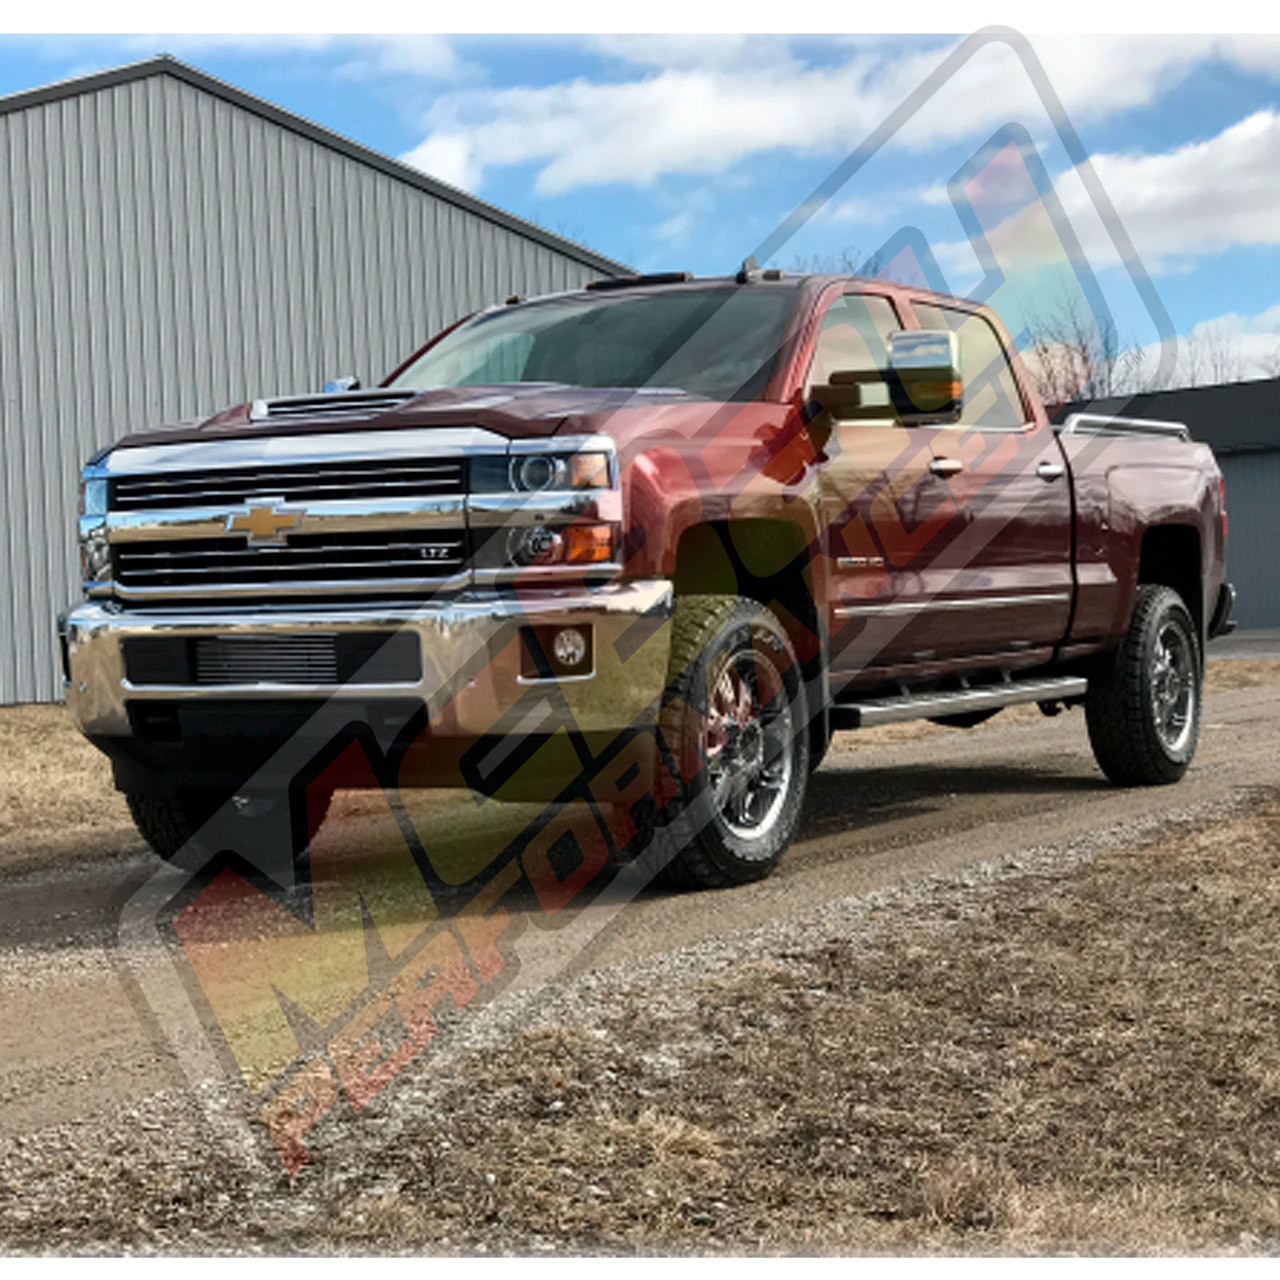 2017 Ram 2500 Leveling Kit >> 2017 2018 Chevrolet Silverado Gmc Sierra 2500 3500 4x4 2 5 Front Torsion Bar Key Lift Leveling Kit